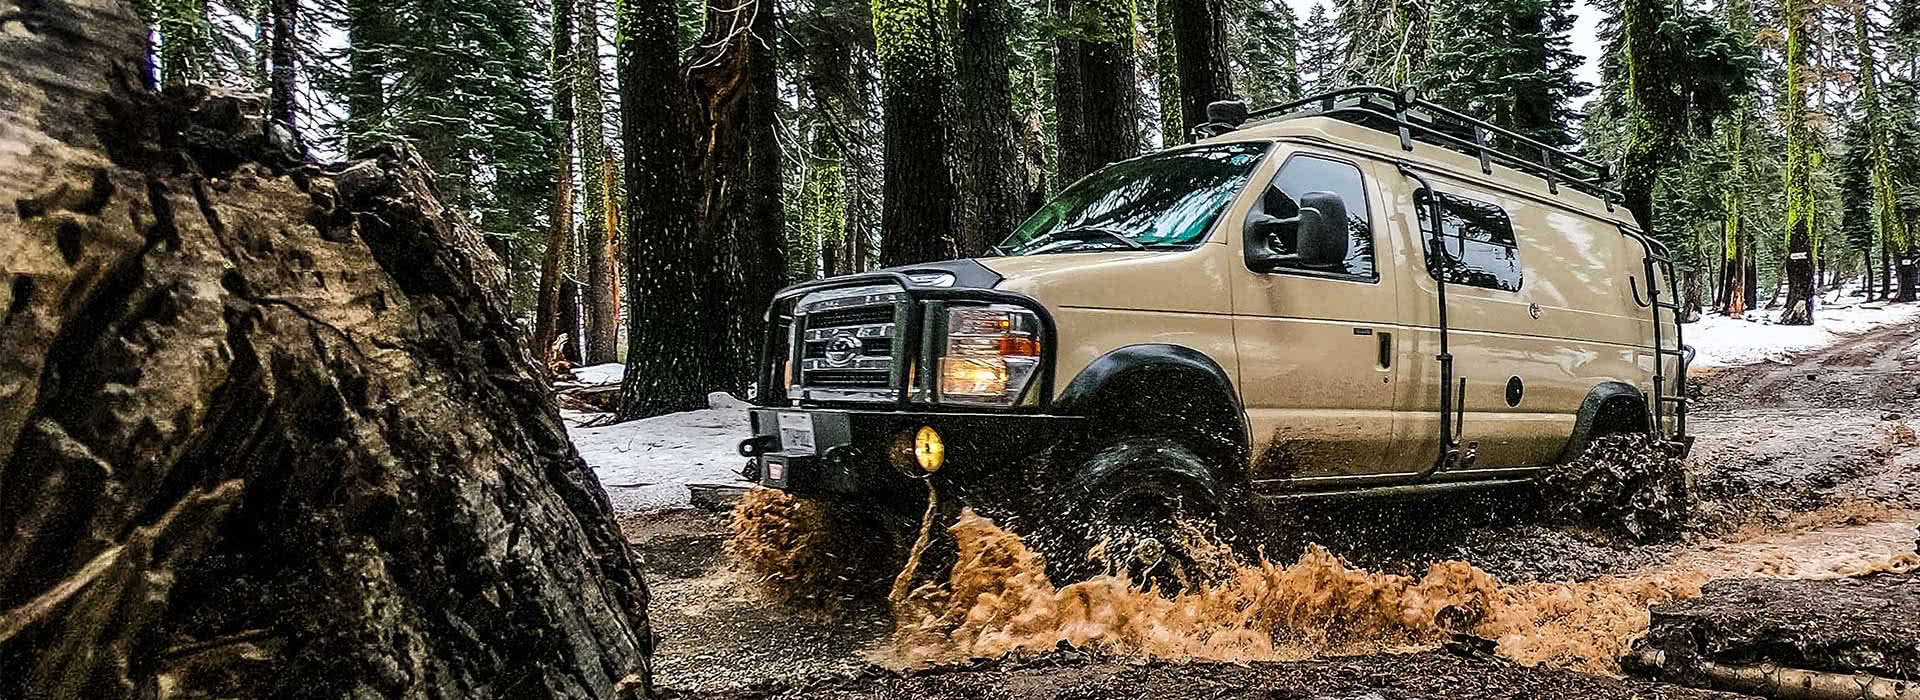 sportsmobile-4×4-van-adventures